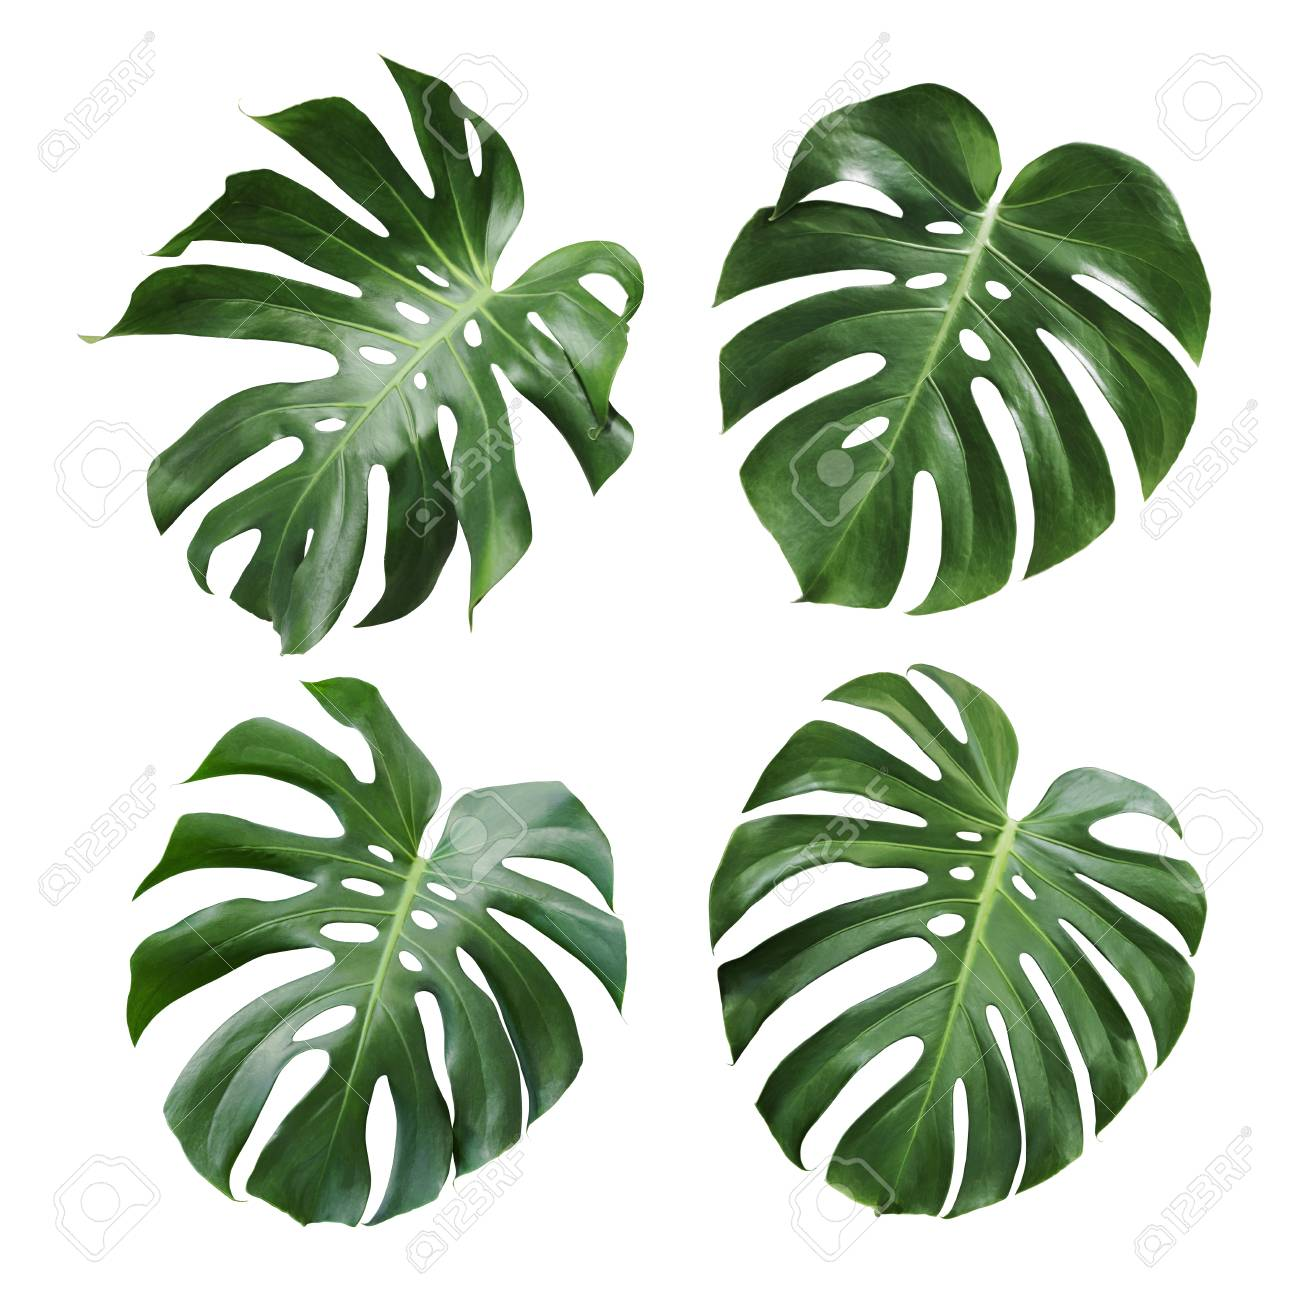 Monstera Deliciosa Tropical Leaf Isolated On White Background Stock Photo Picture And Royalty Free Image Image 98443296 Each of the element has their individual size. monstera deliciosa tropical leaf isolated on white background